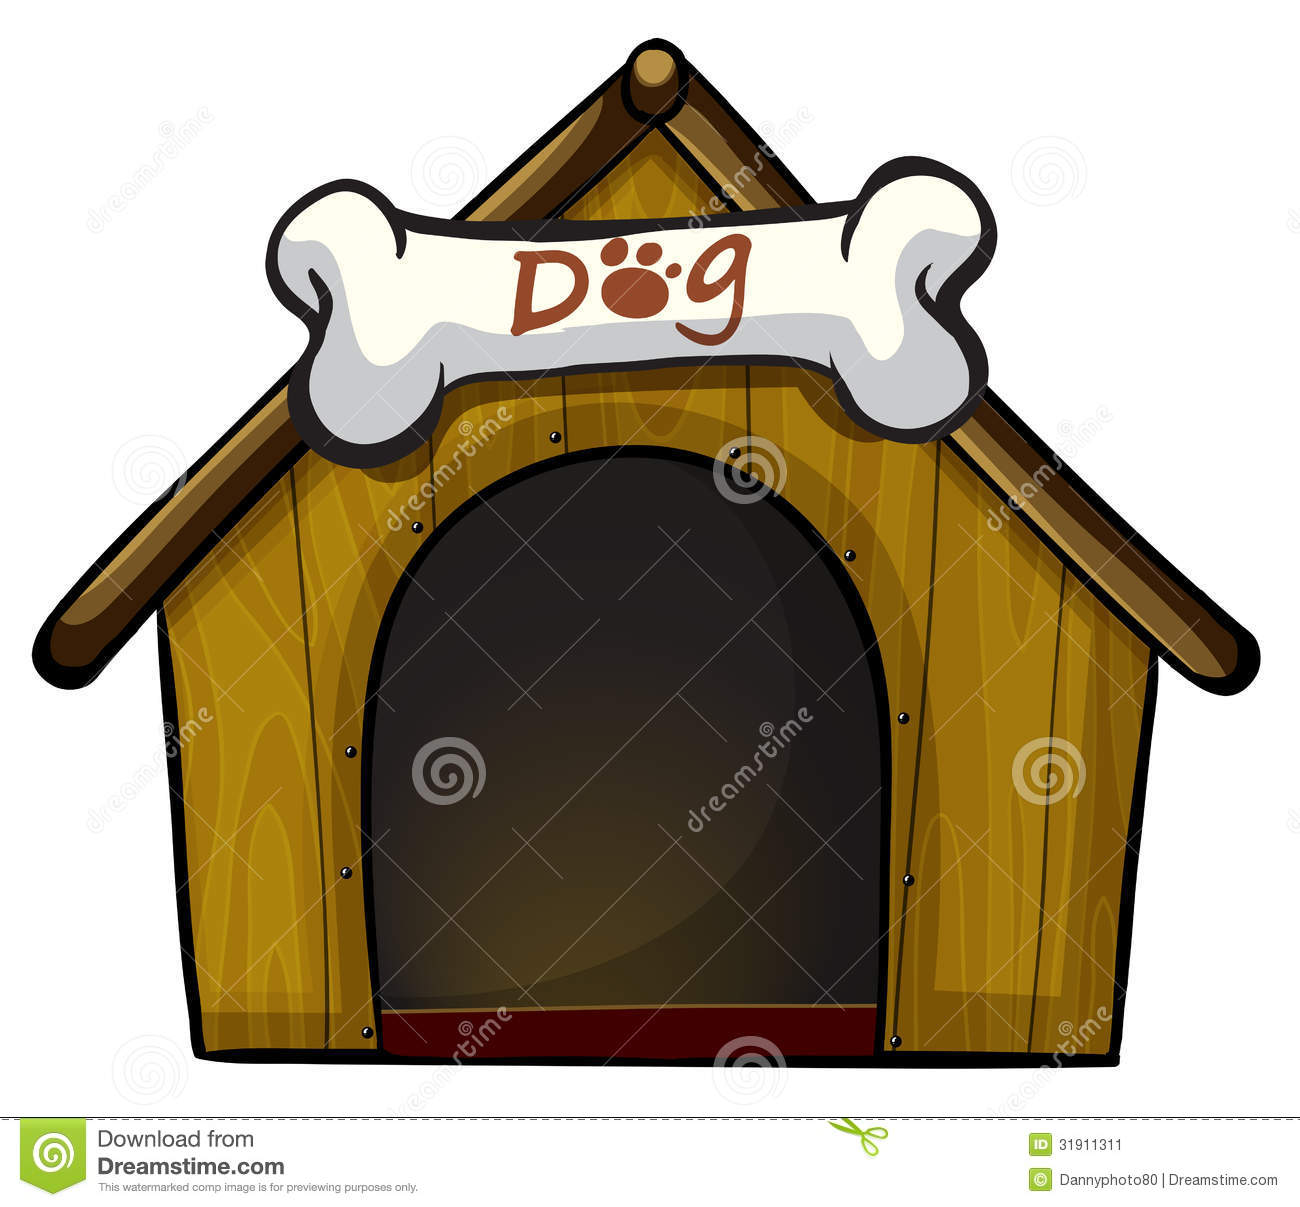 Dog House Cartoon Images